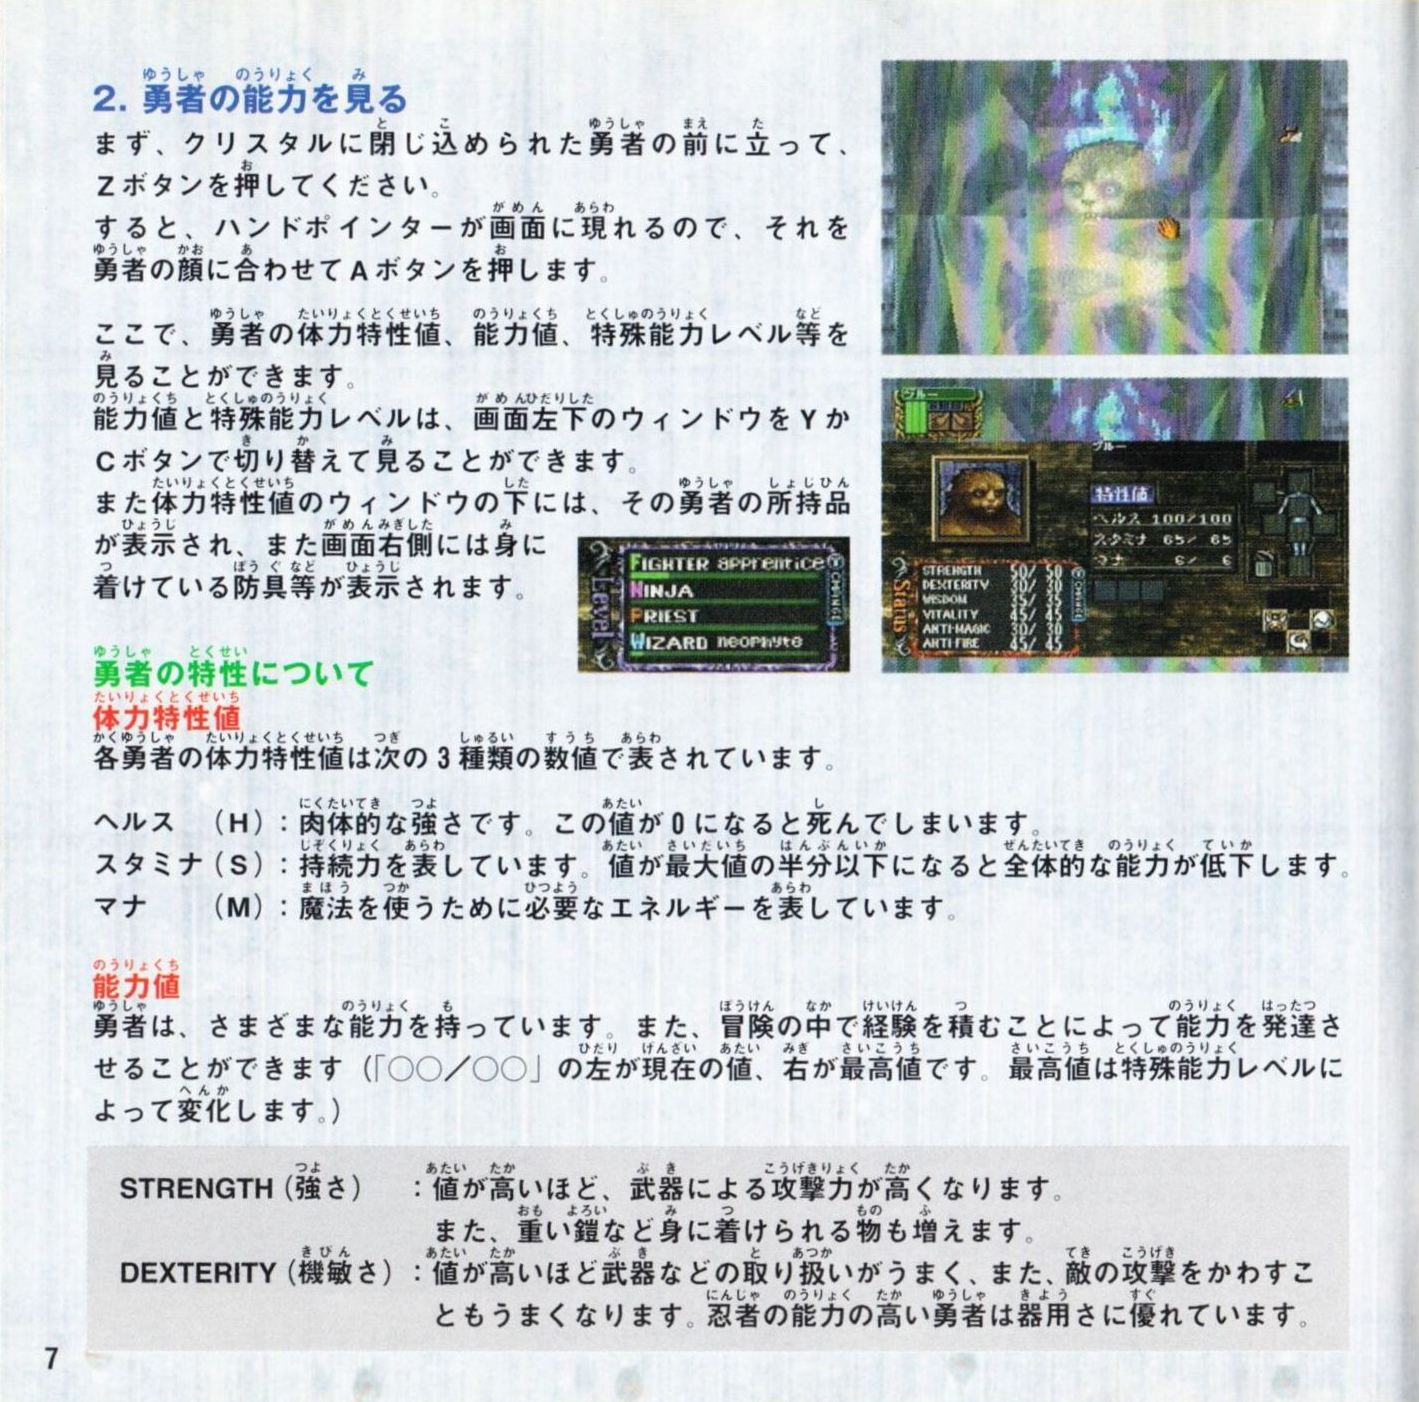 Game - Dungeon Master Nexus - JP - Sega Saturn - Booklet - Page 008 - Scan